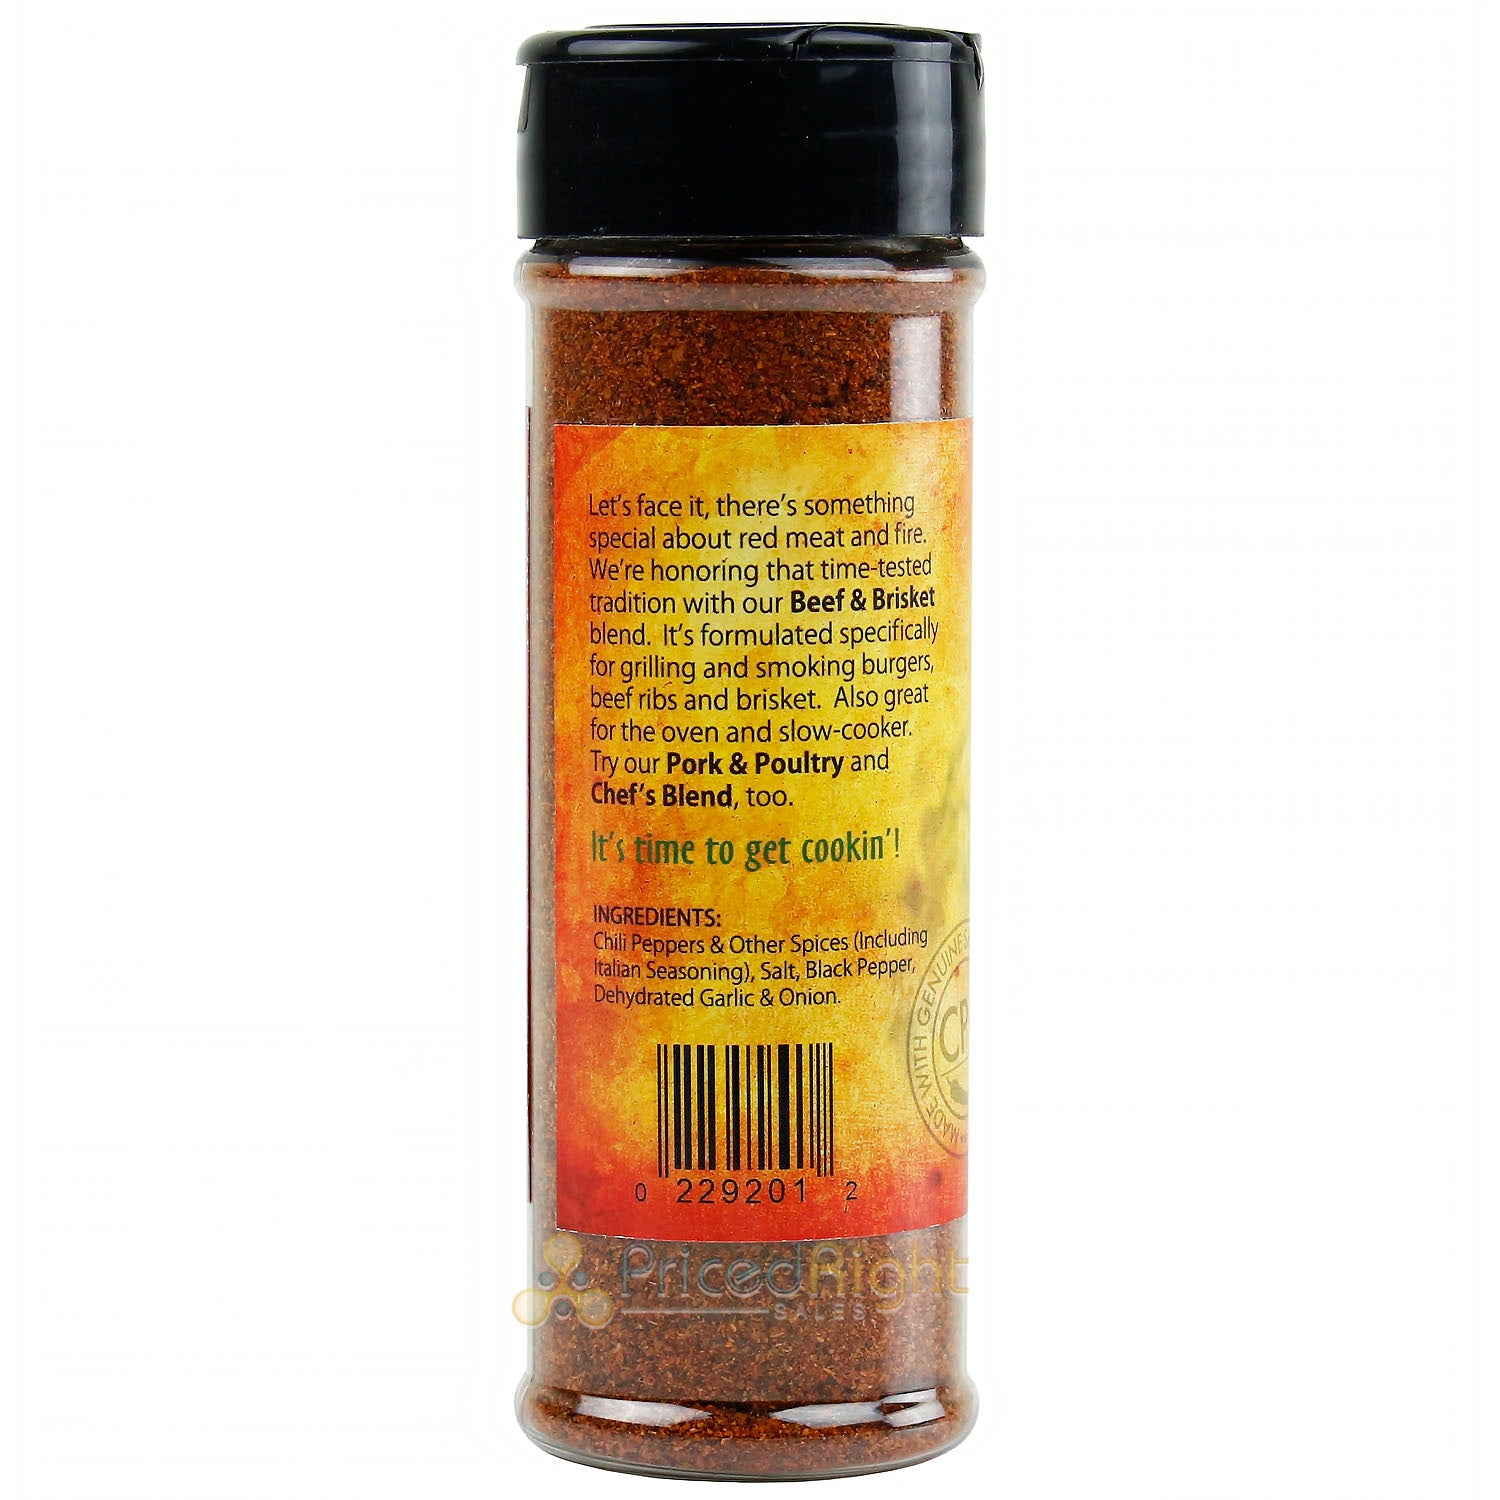 Cowhorn Pepper Company Beef & Brisket Seasoning No MSG Gluten and Sugar Free